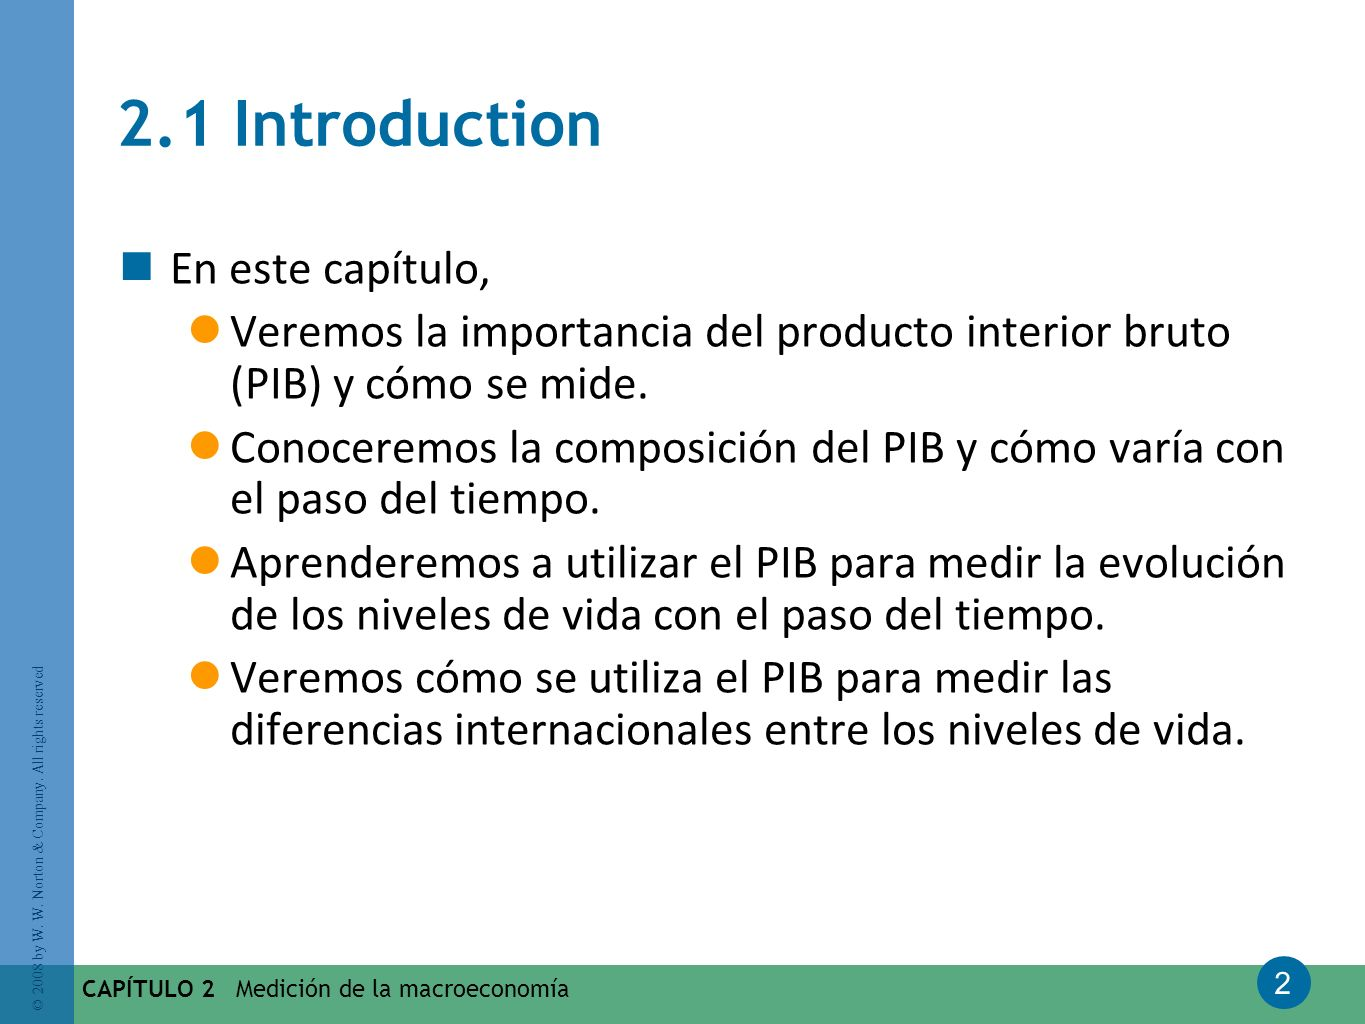 2.1 Introduction En este capítulo,